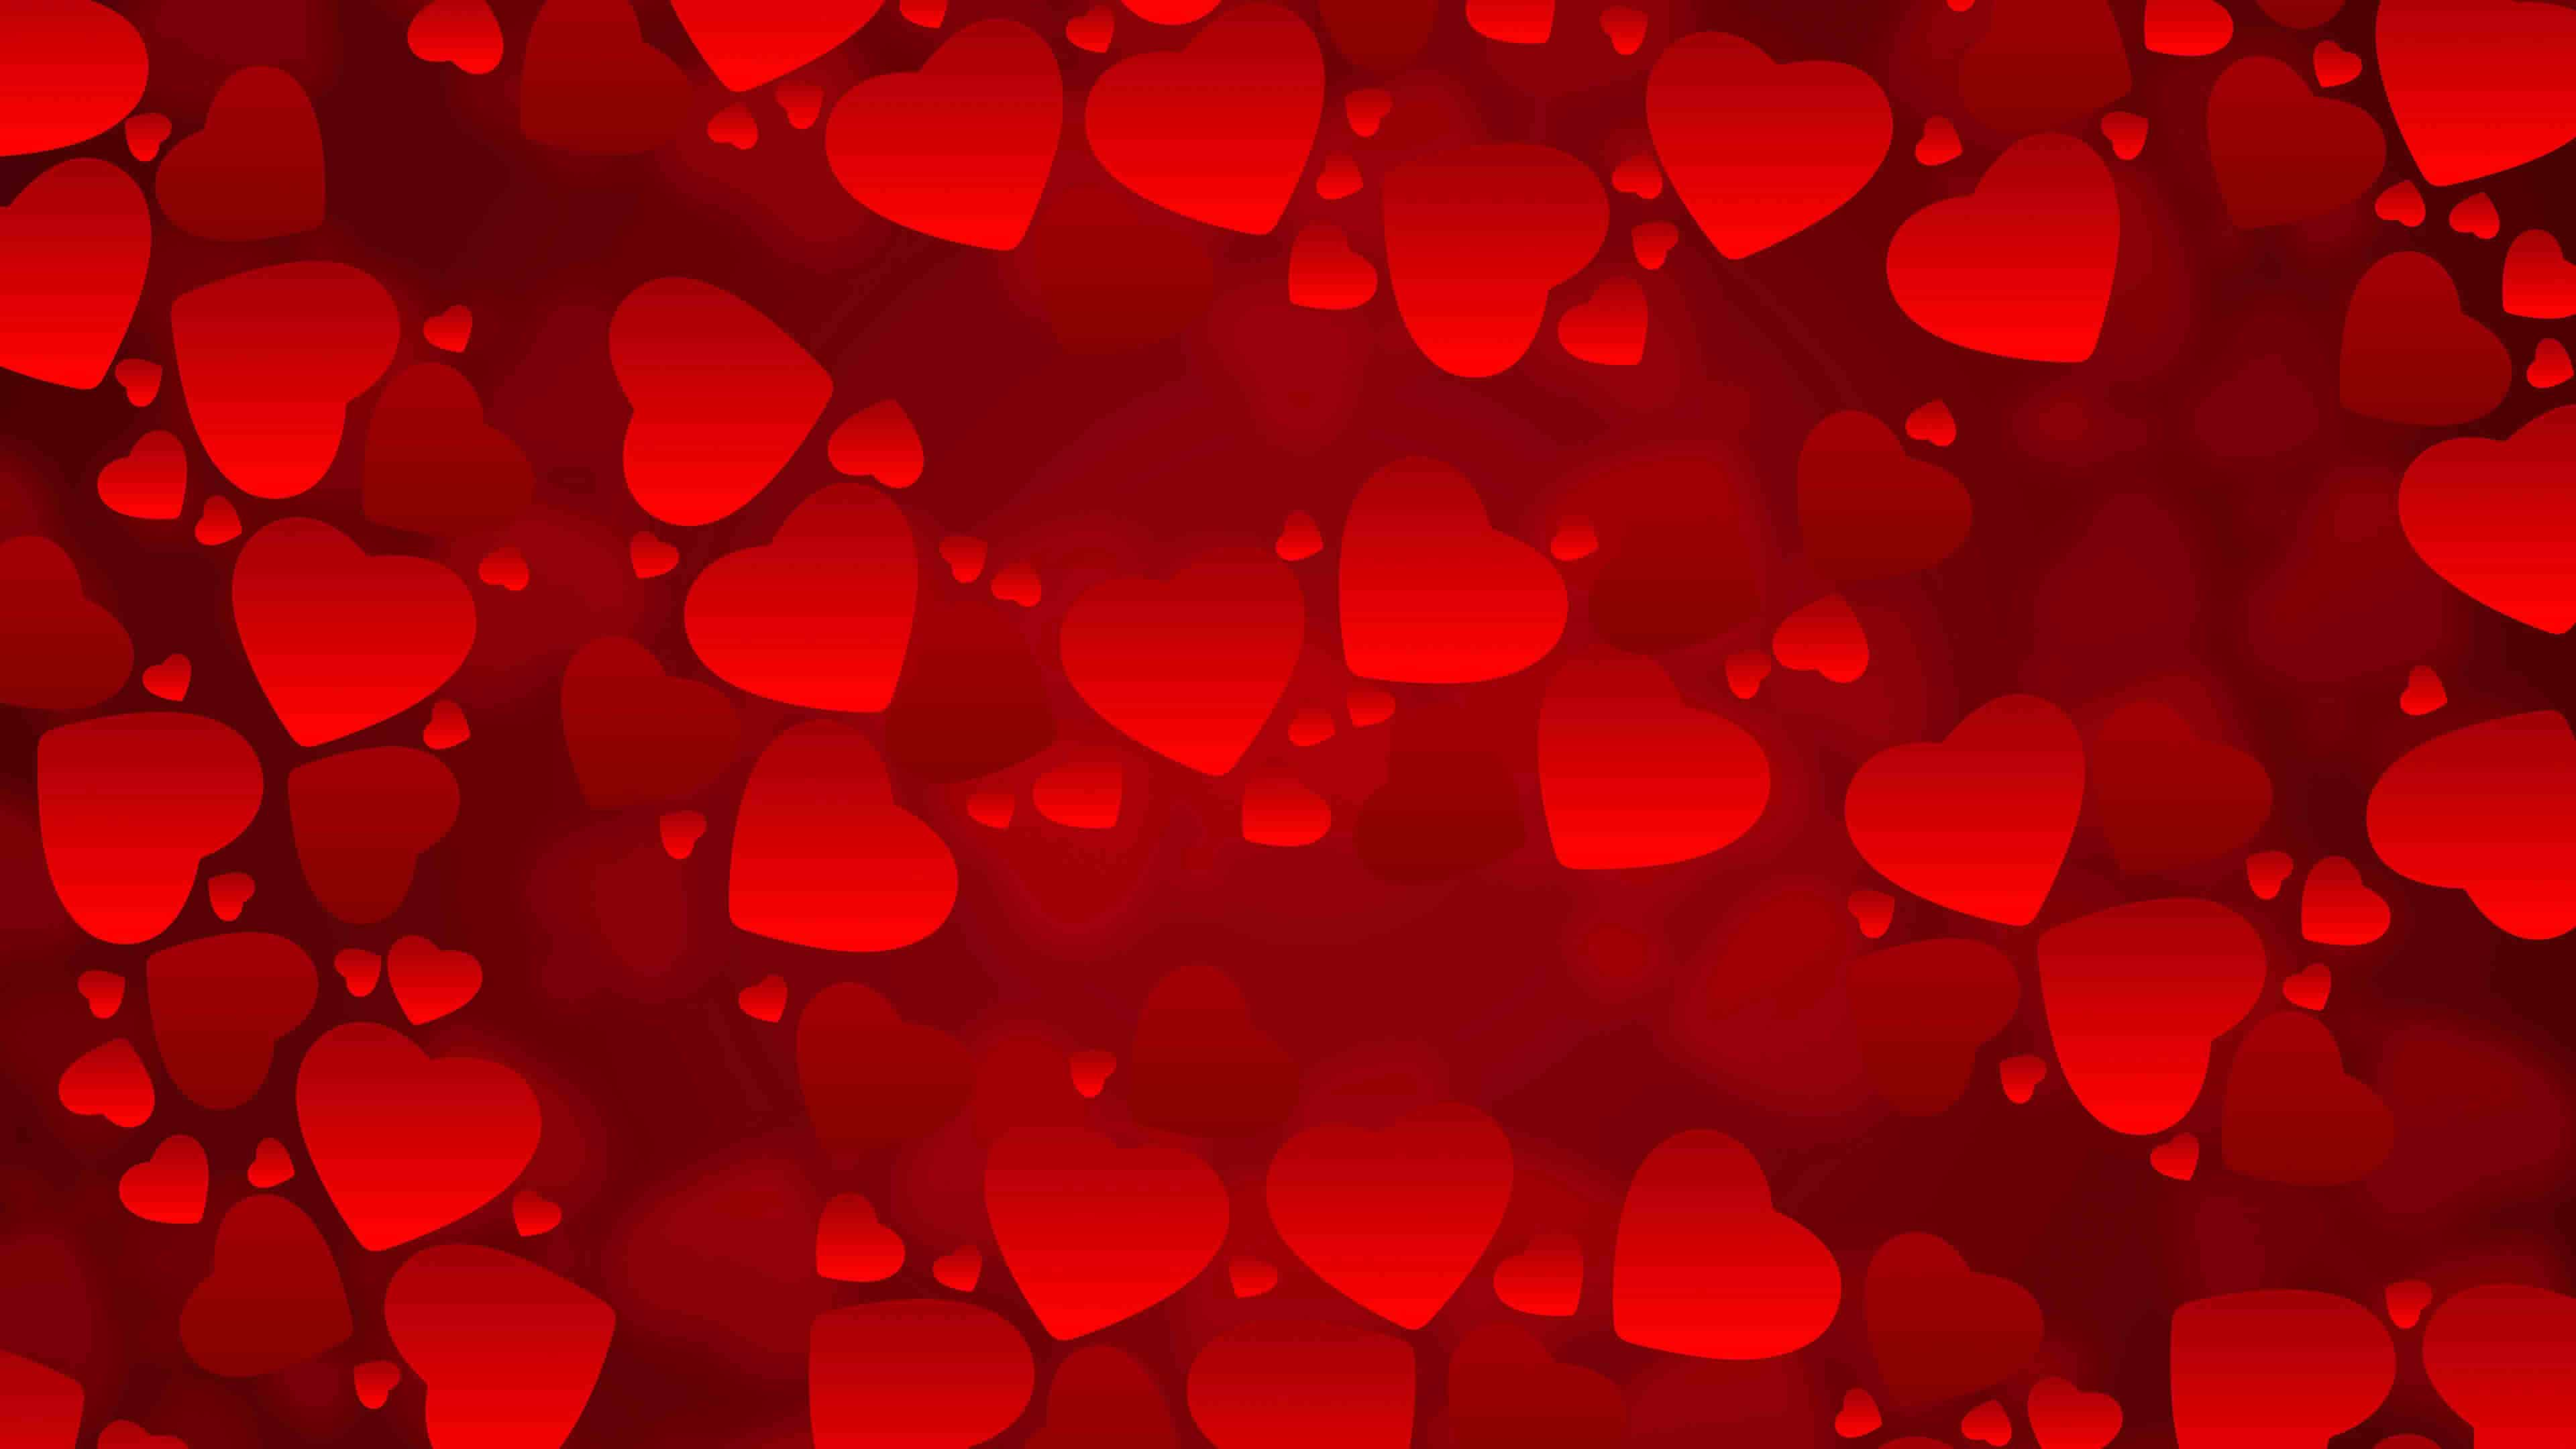 red valentines heart background uhd 4k wallpaper